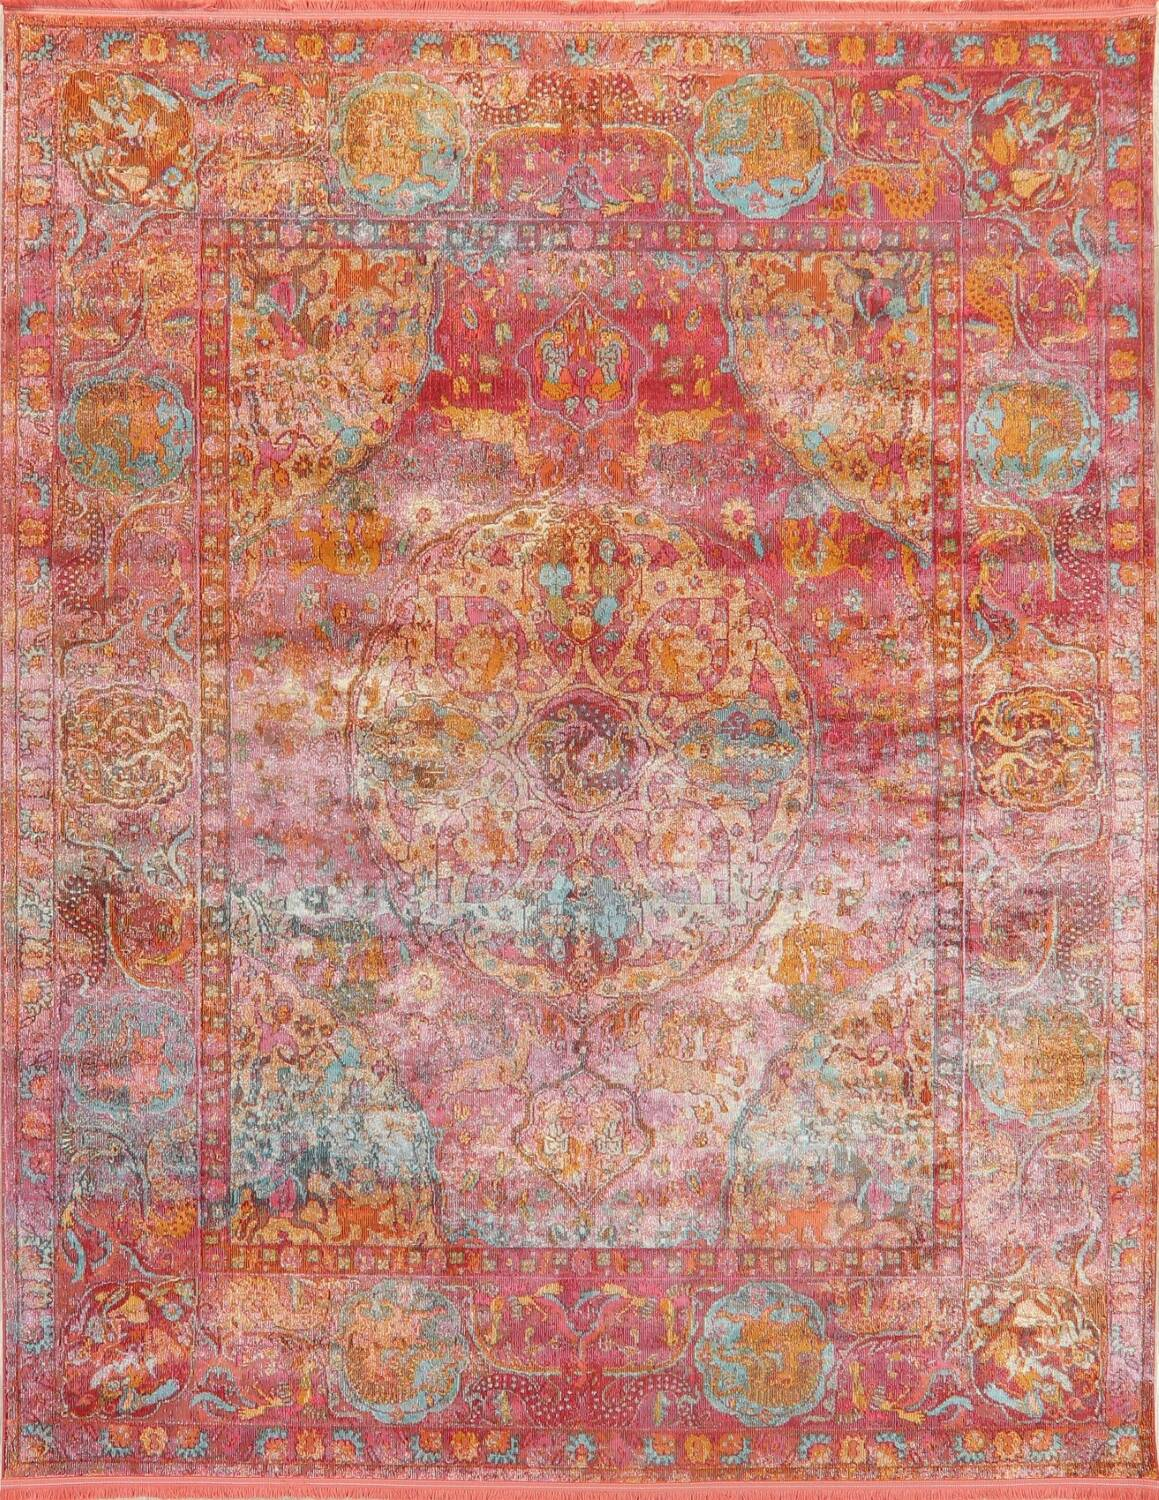 Hunting Design Pictorial Distressed Heat-Set Area Rugs image 1